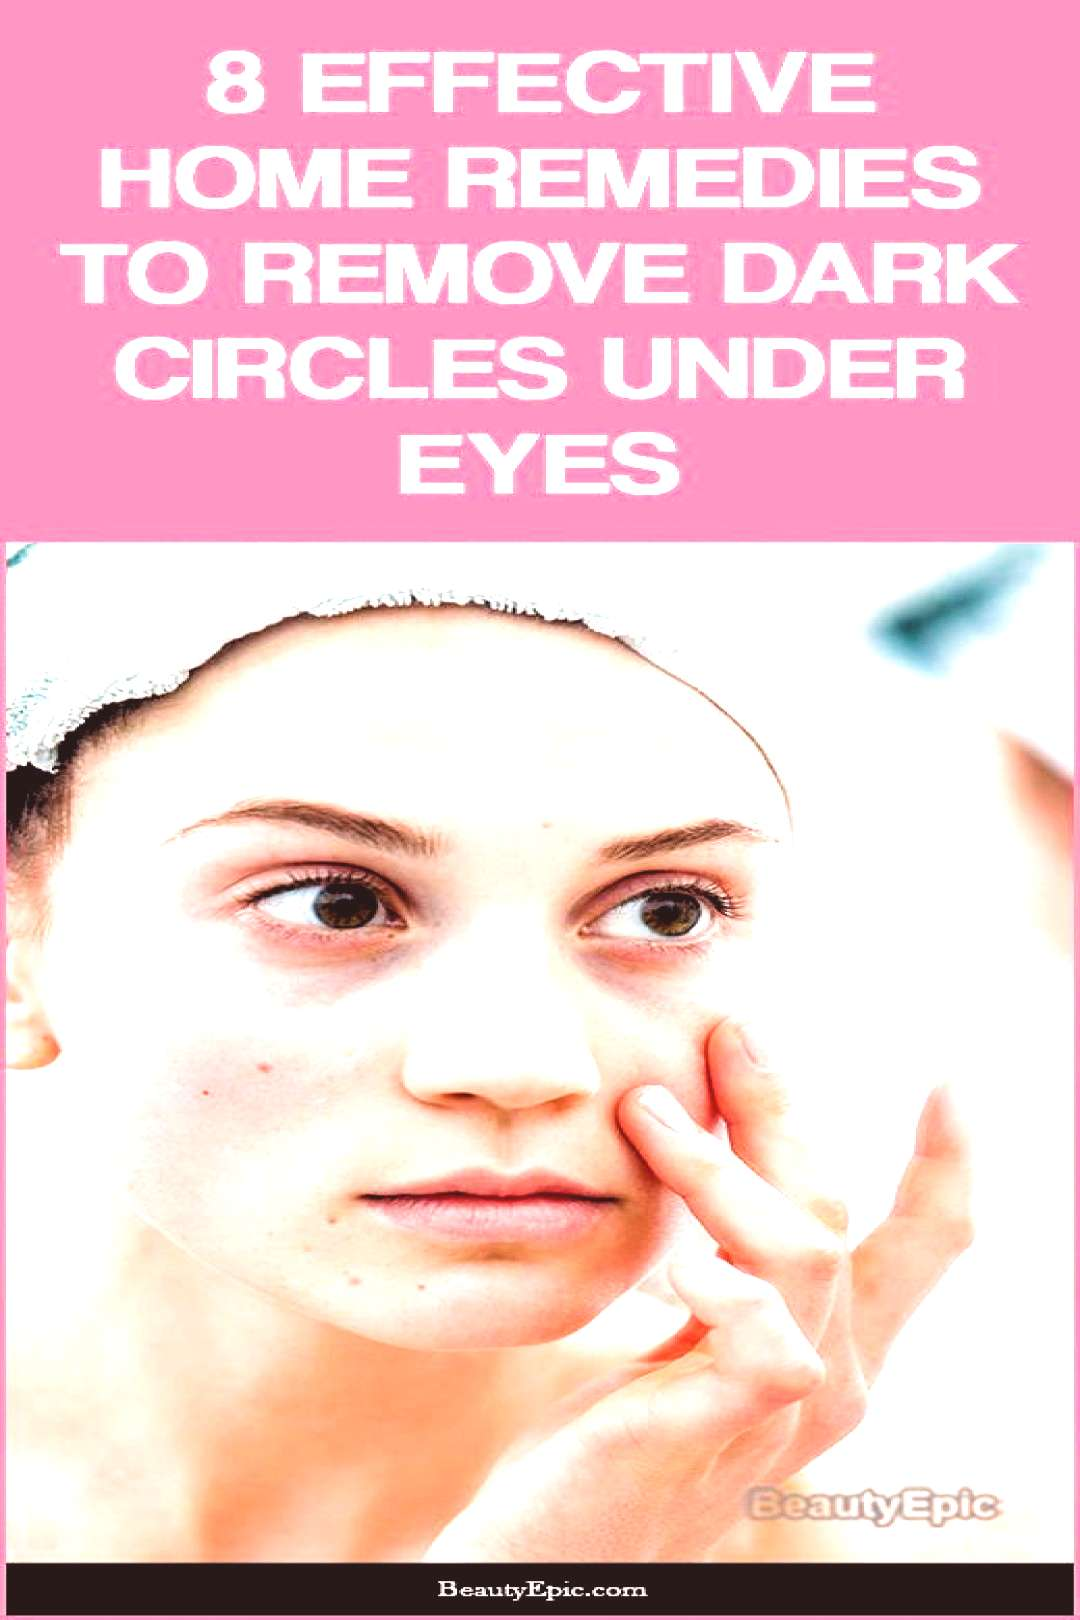 Home Remedies for Dark Circles Under Eyes Home Remedies for Dark Circles Under Eyes